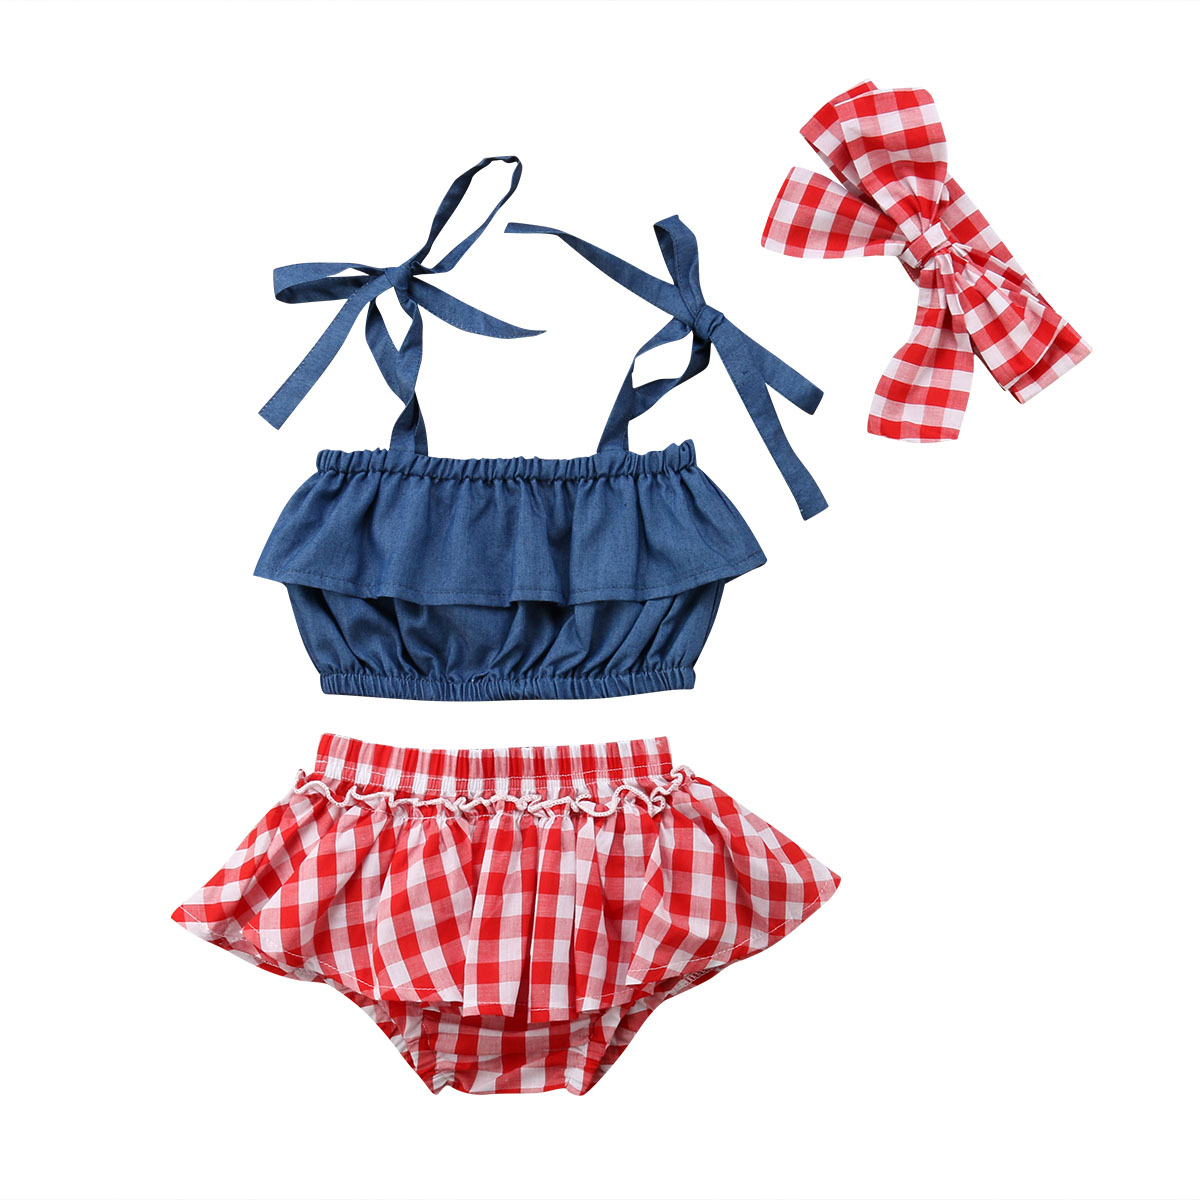 3Pcs Baby Girl Plaid Outfits Toddler Kids Sleeveless Tops+Lattice Shorts+Headband Clothes